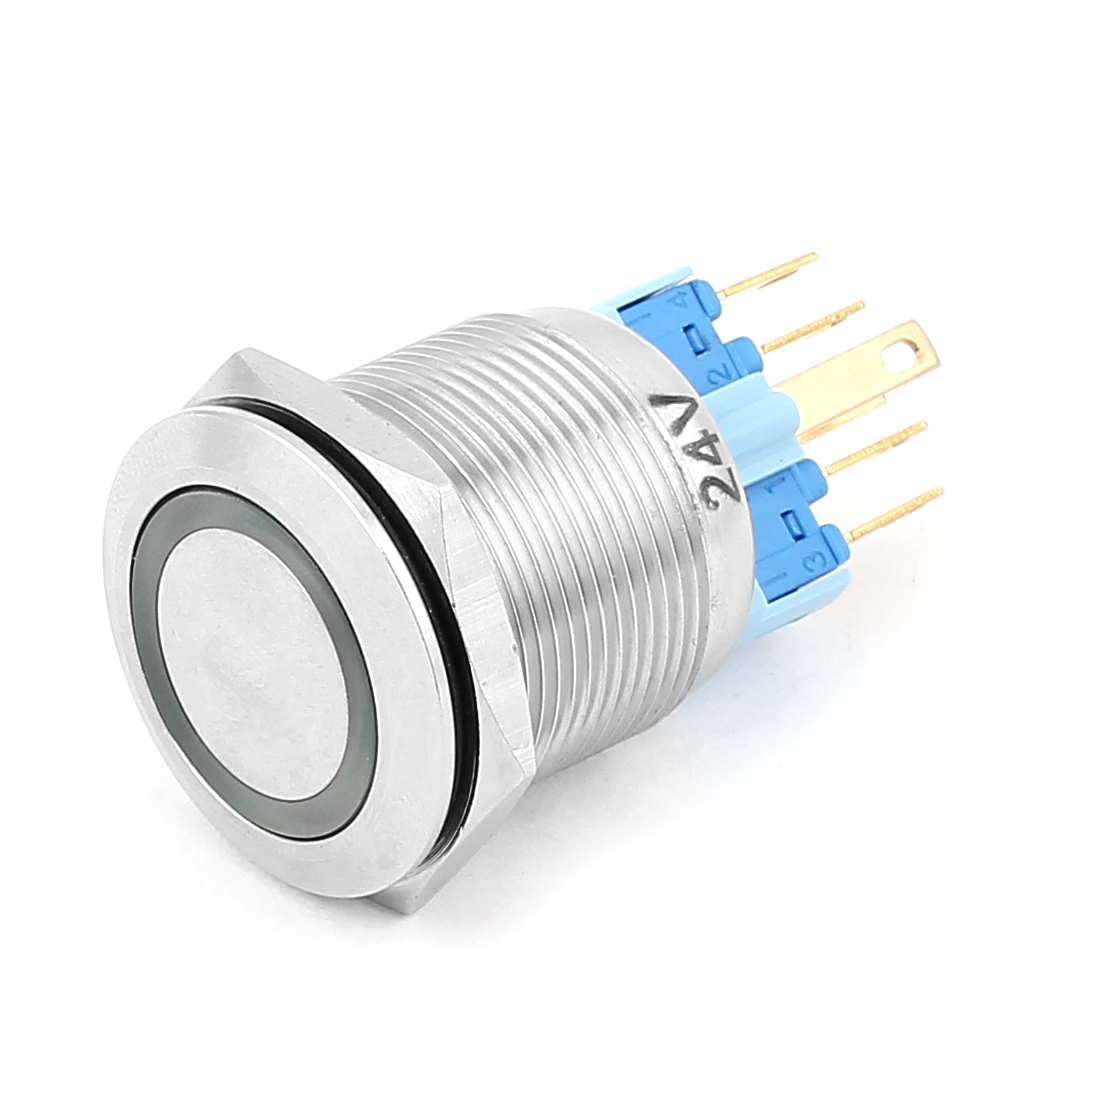 DC 24V 18mm Green LED Light 22mm Mounted Thread 6 Pins DPST NO/NC Latching Push Button Switch